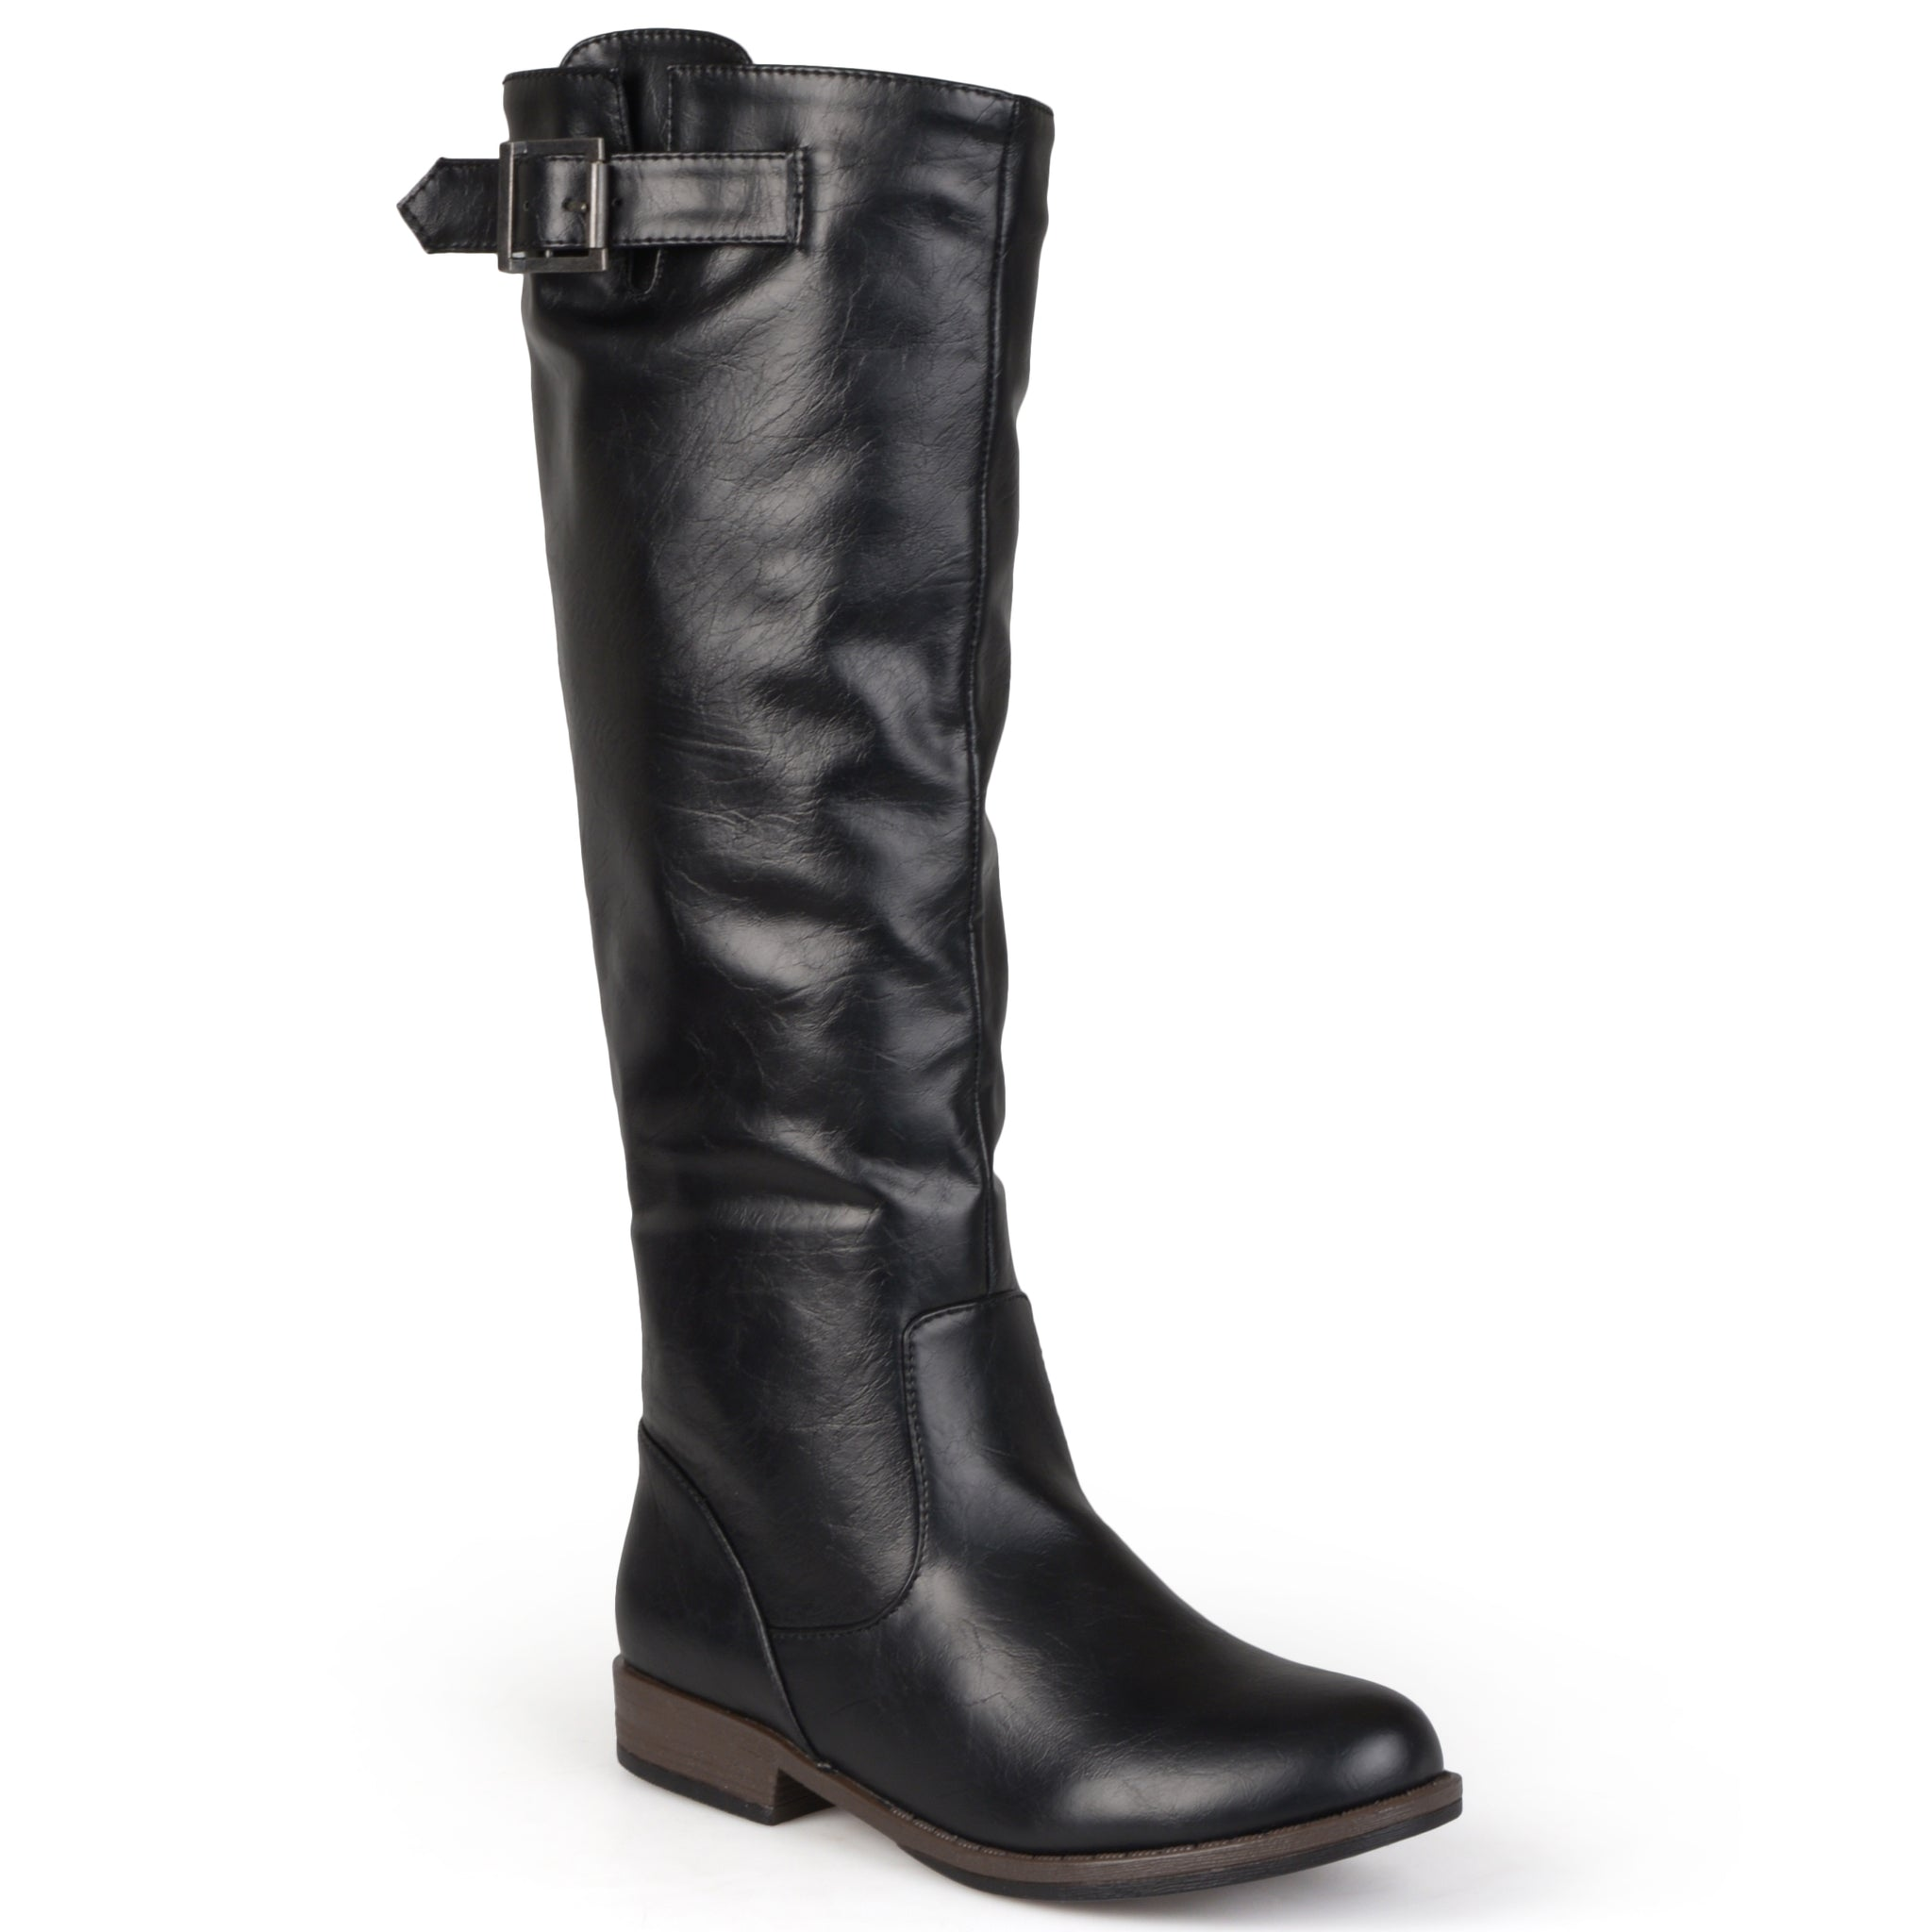 Buckle Knee-high Riding Boot